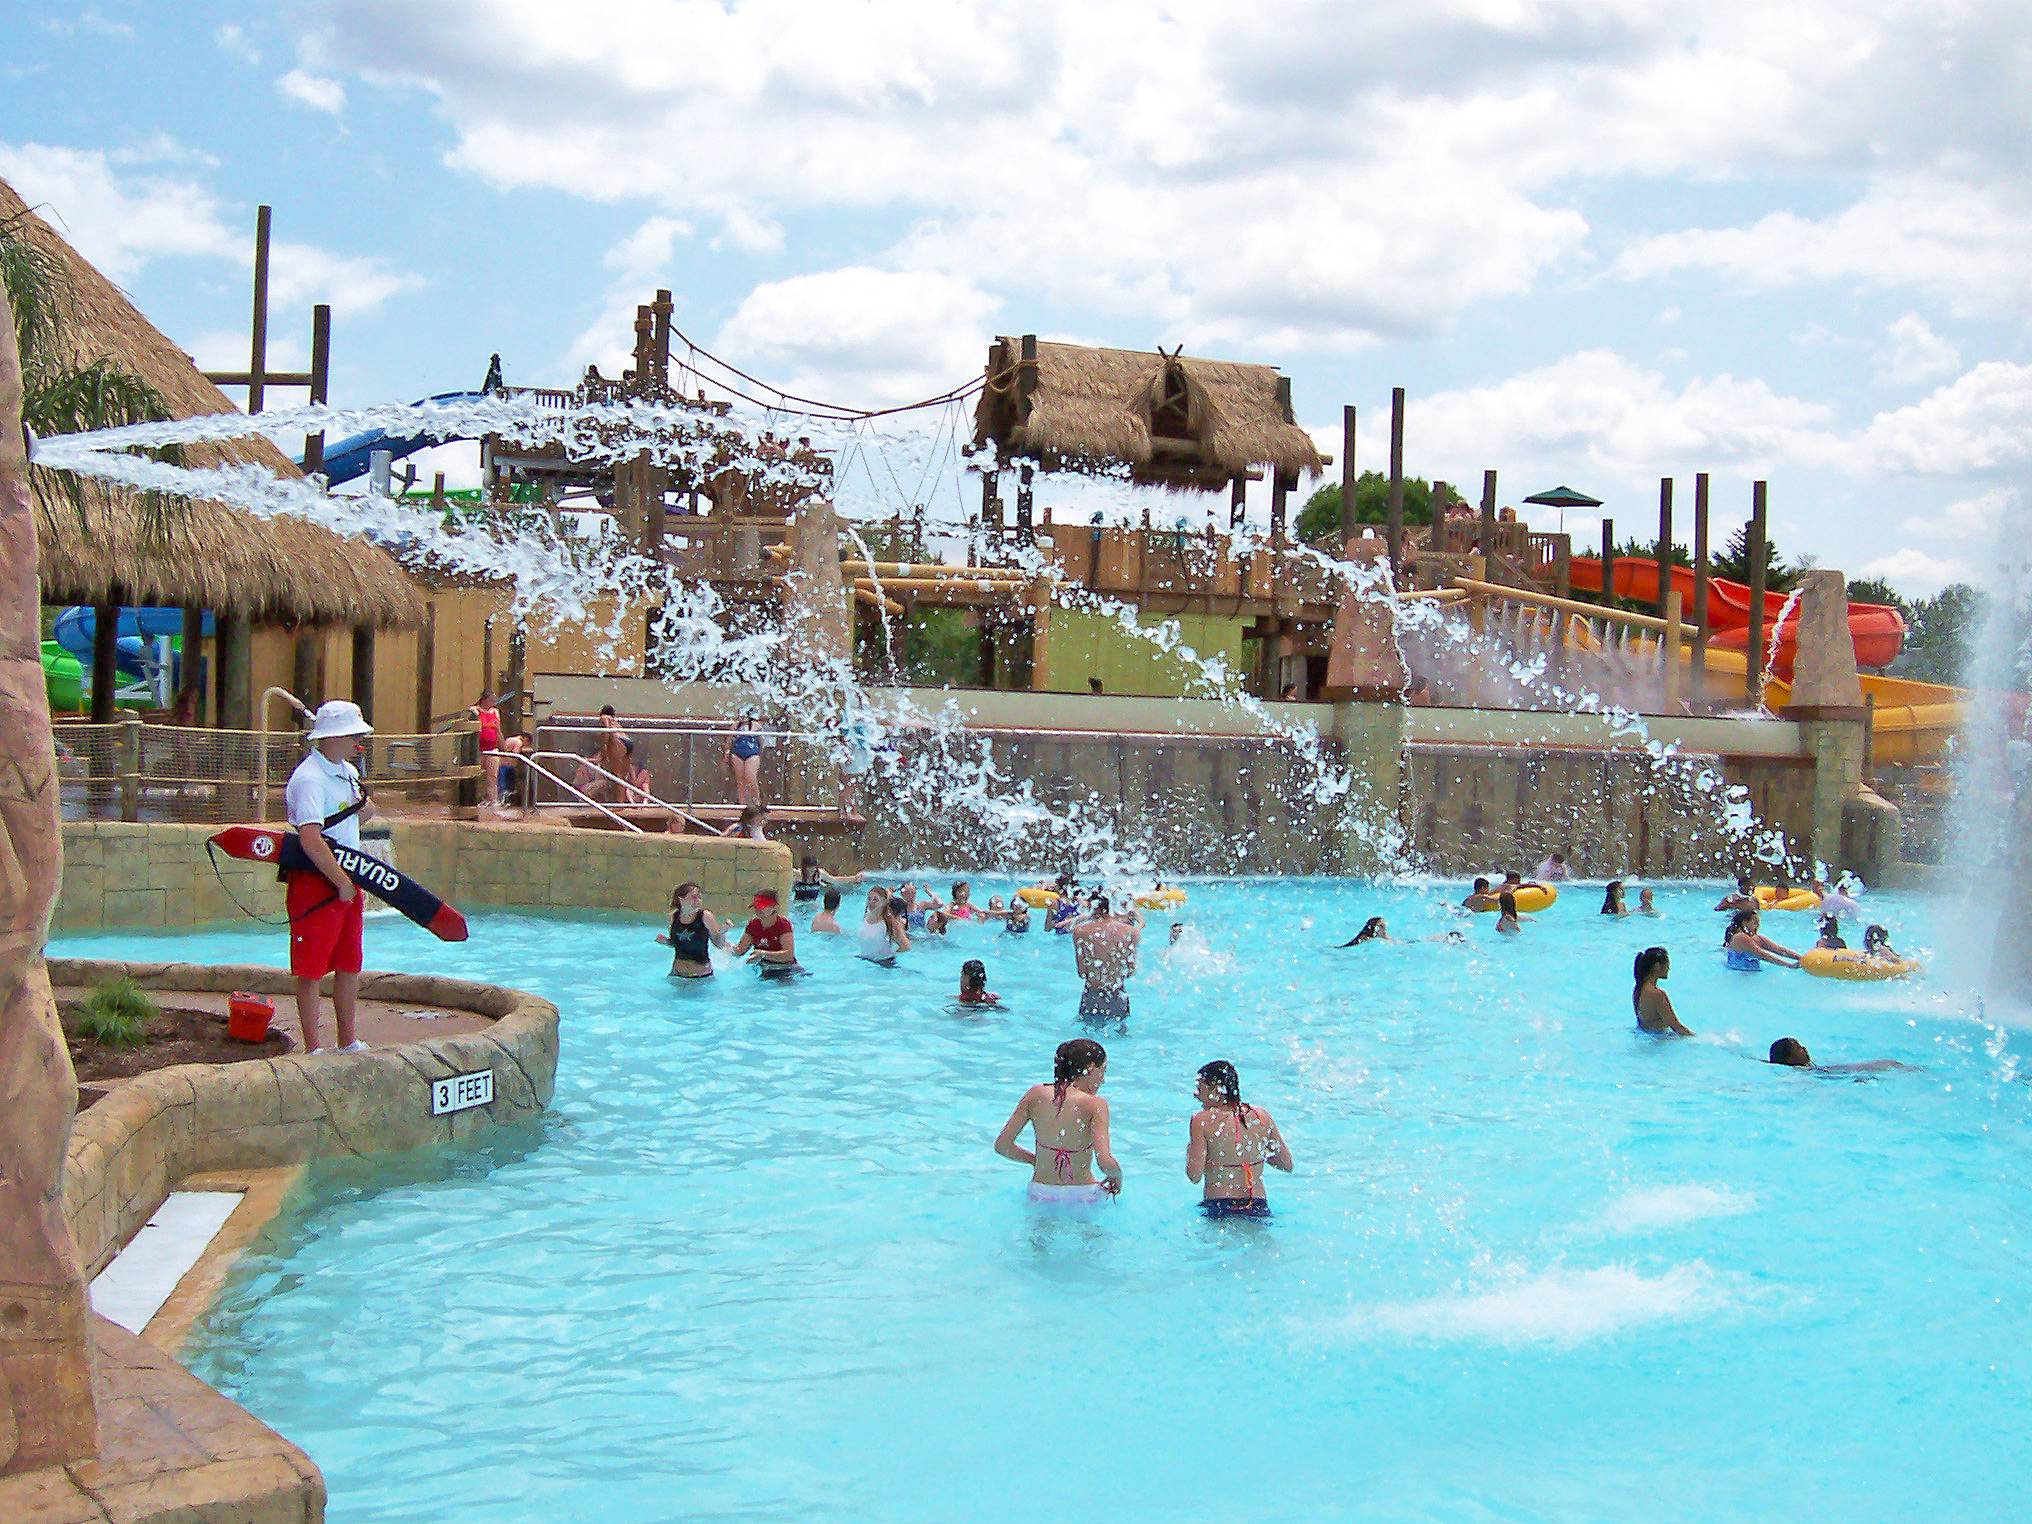 Six Flags Adventure Pool